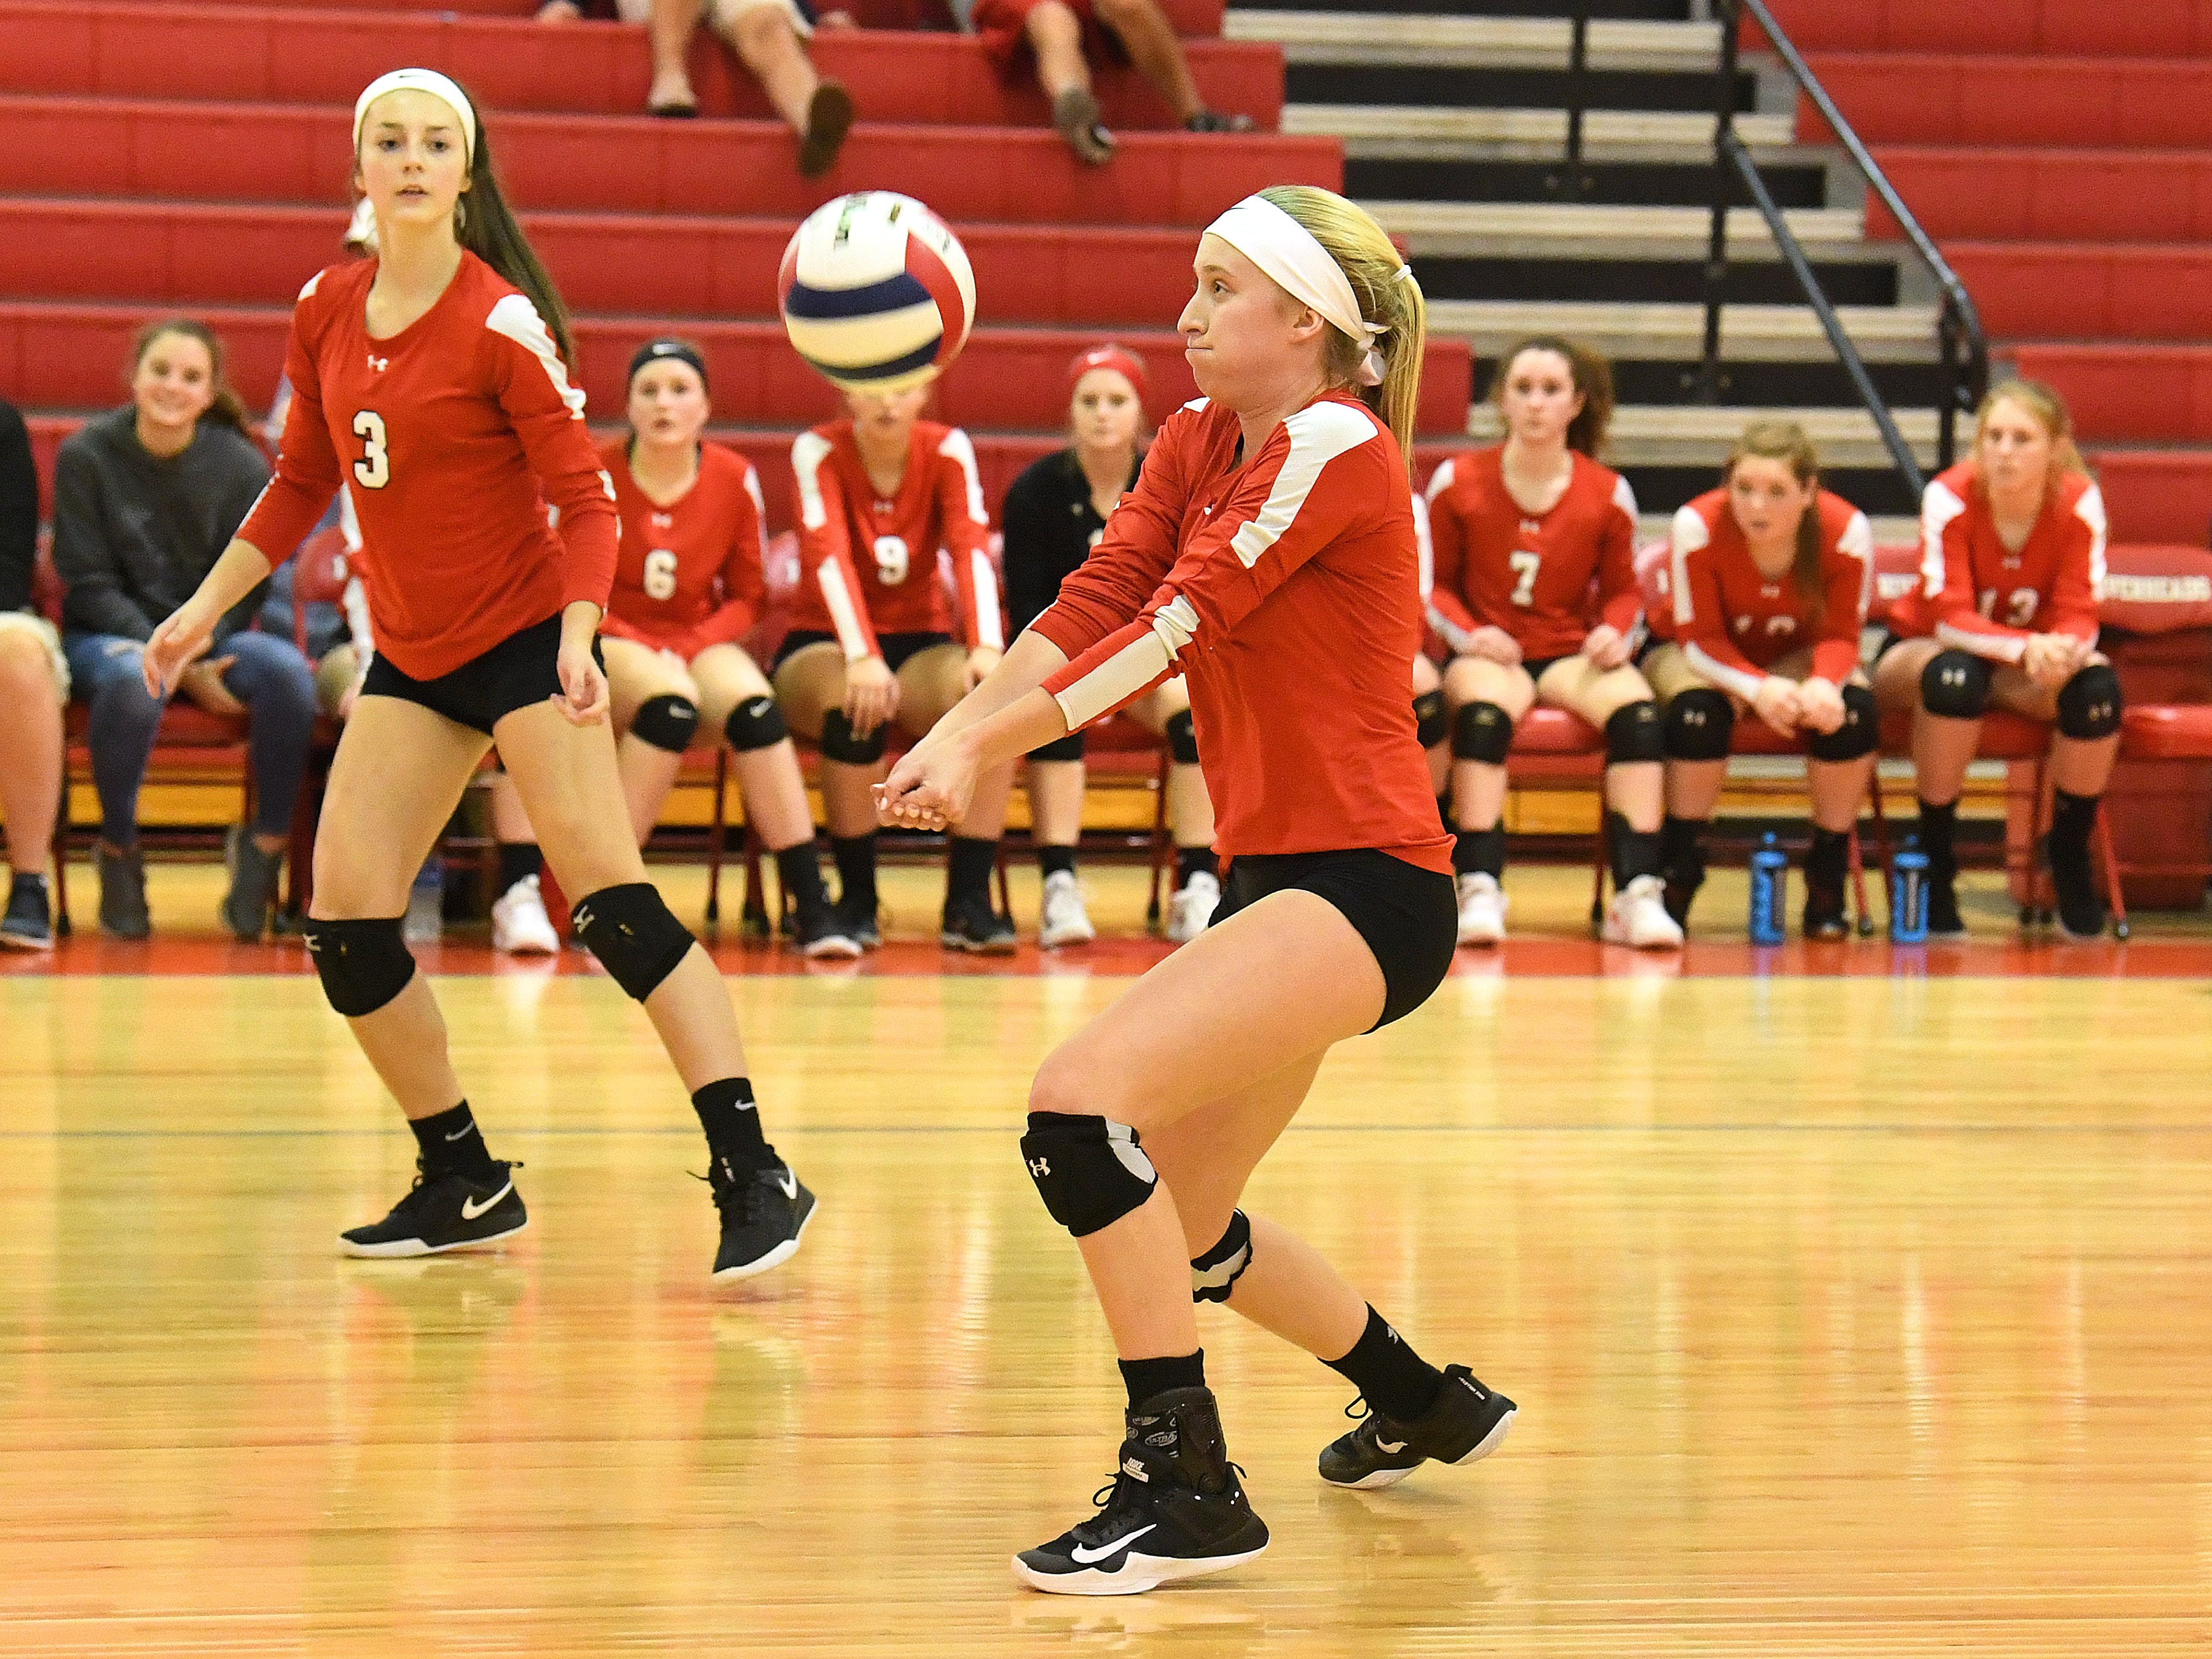 Riverheads' Emma Tomlinson bumps the ball as teammate Kendyl Argenbright watches during the Region 1B volleyball championship played in Greenville on Wednesday, Nov. 7, 2018.